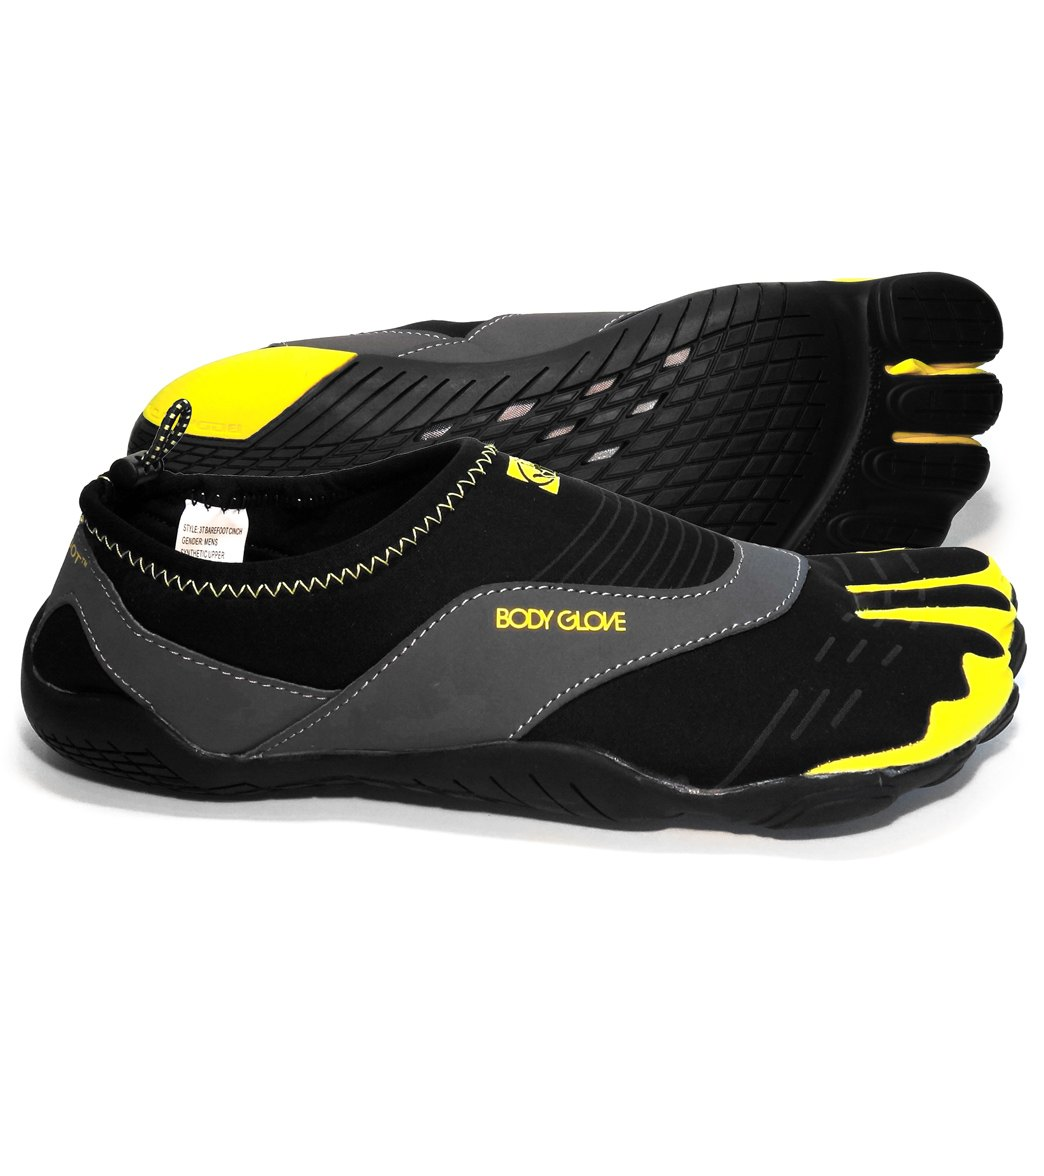 Body Glove Men's 3T Barefoot Cinch Water Shoe at SwimOutlet.com